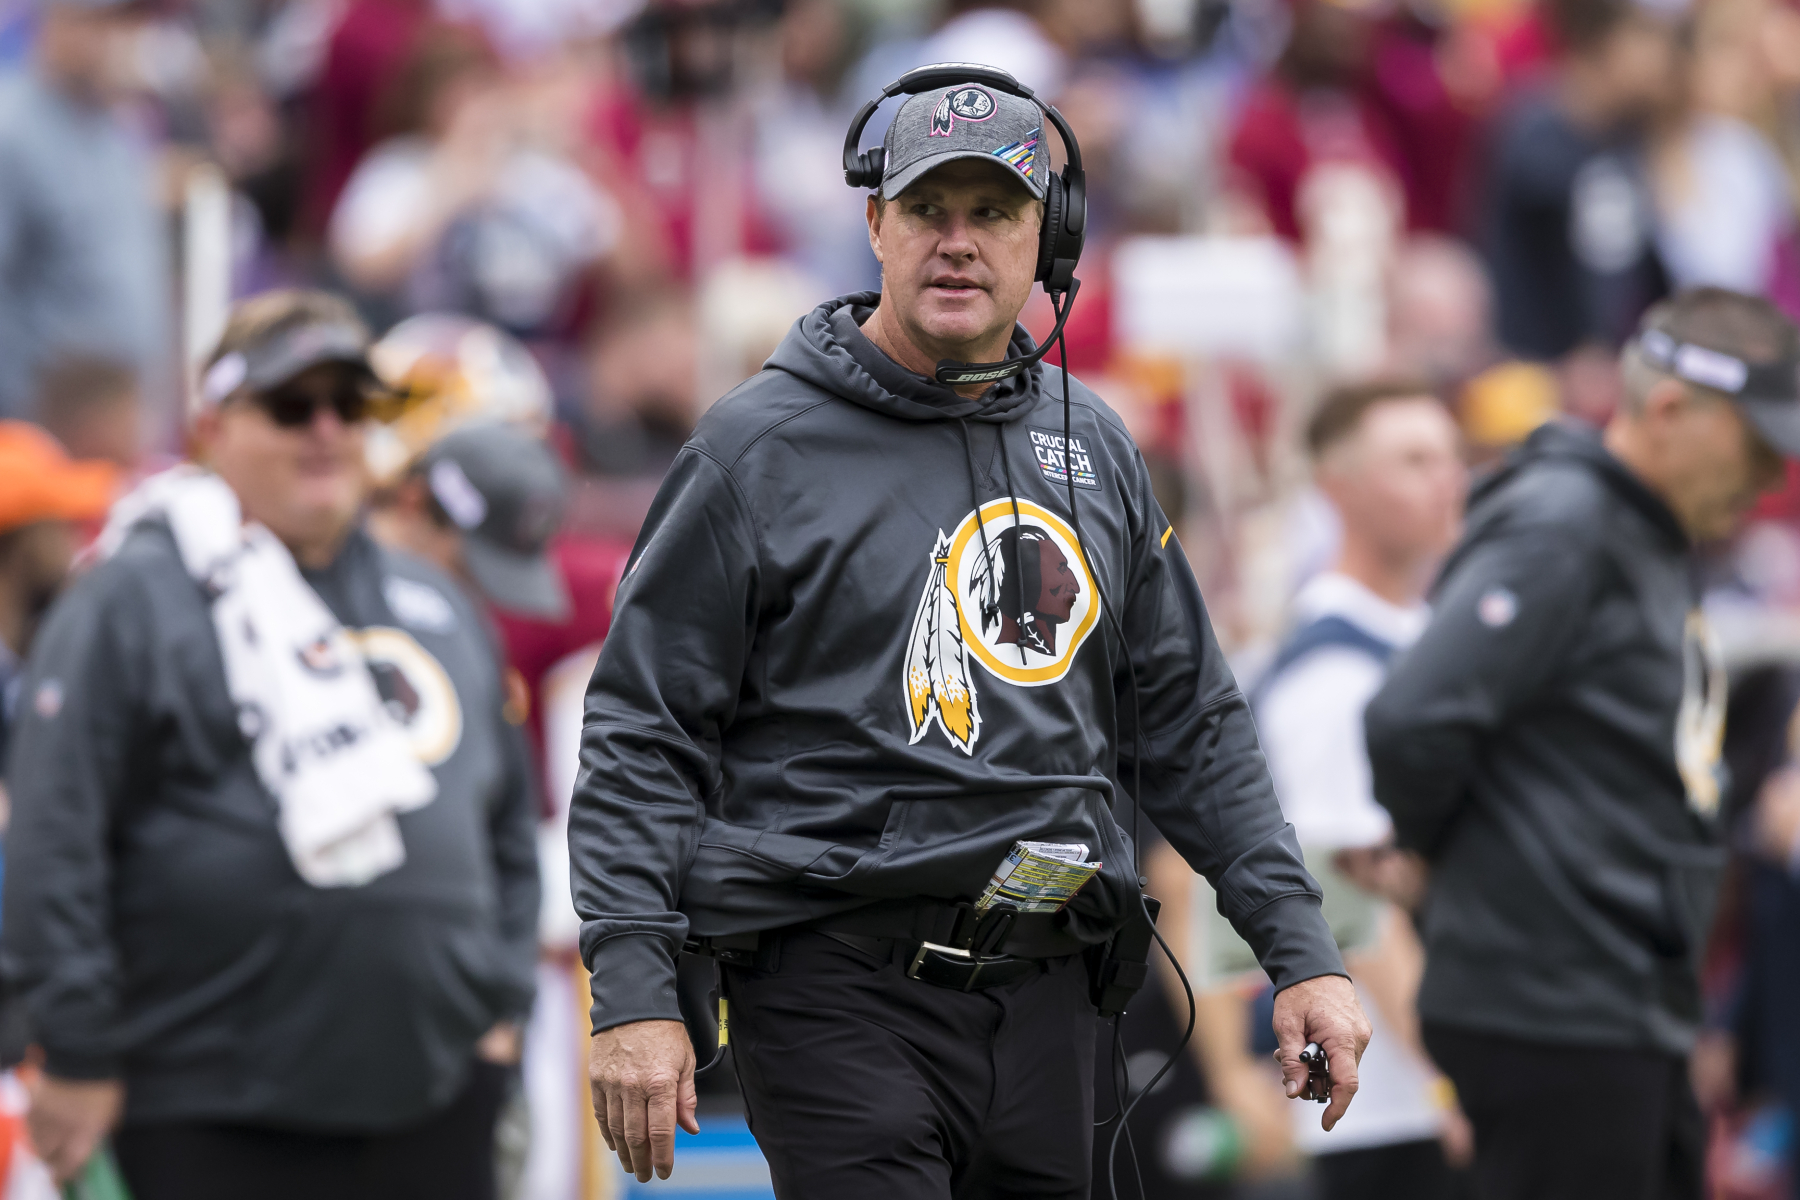 Jay Gruden's time as head coach of the Washington Redskins went horribly. What is his net worth and how does it compare to Jon Gruden's?